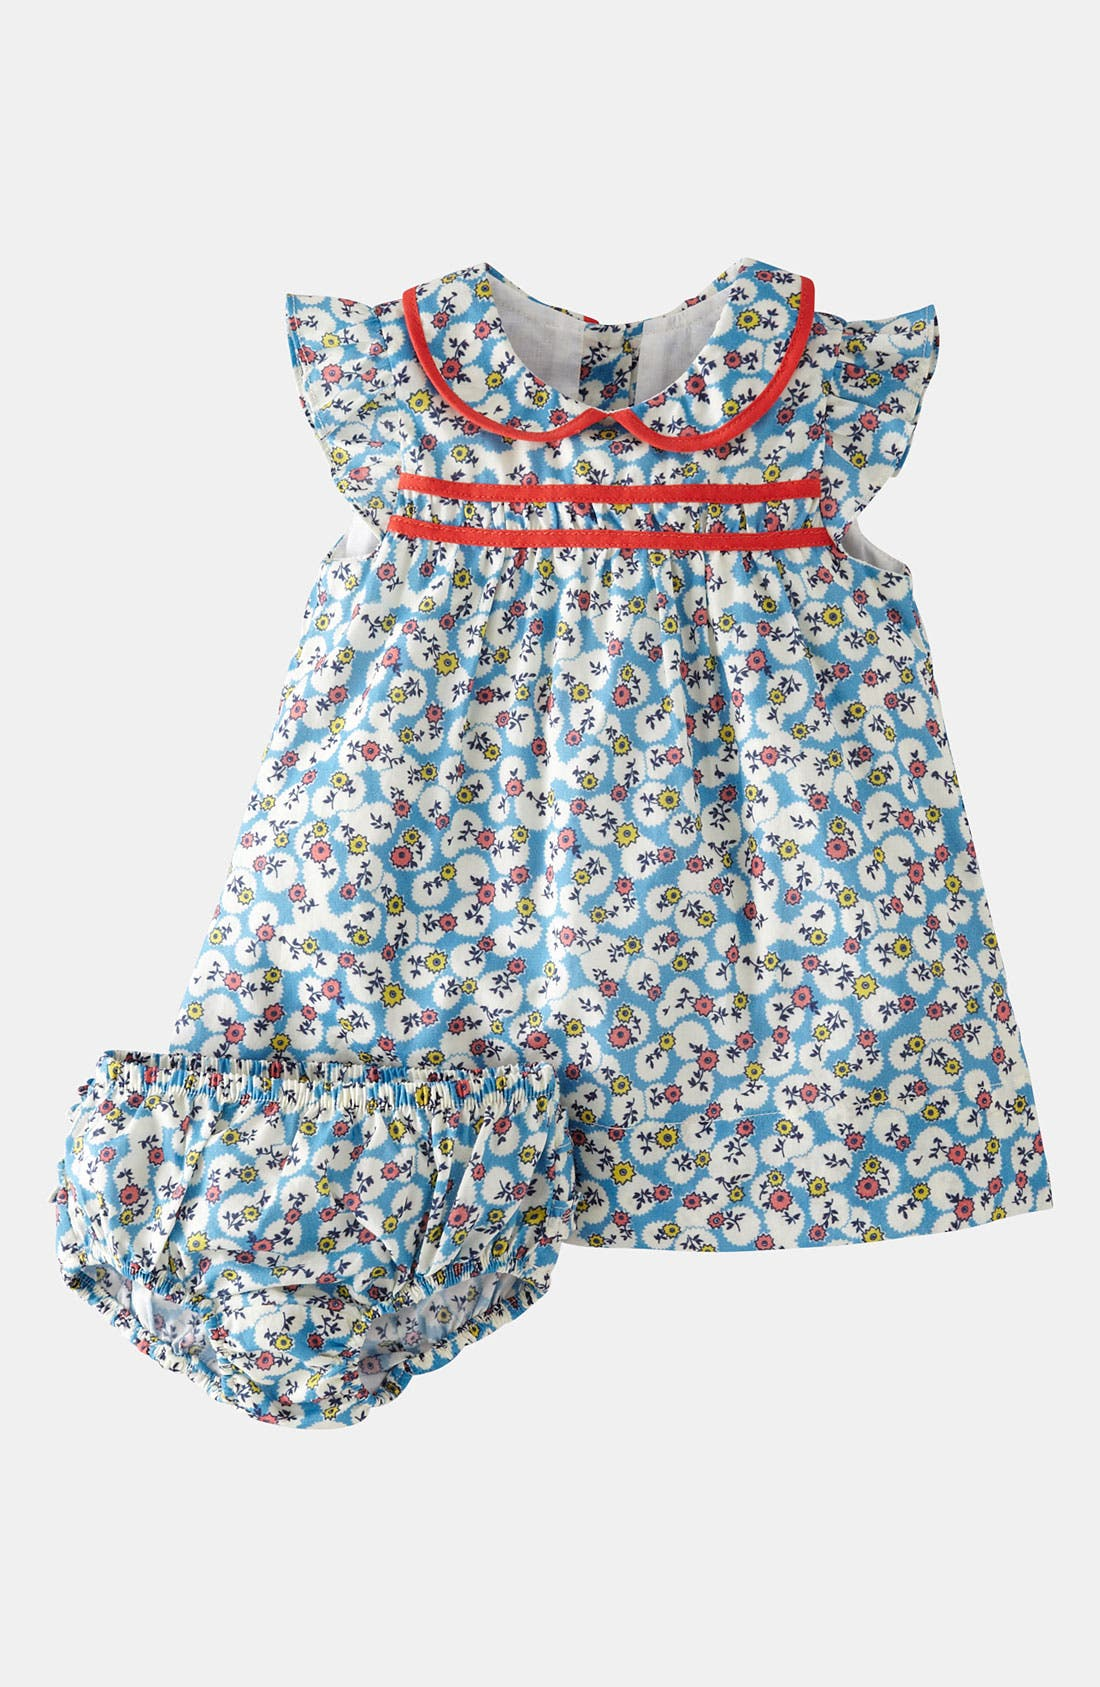 Main Image - Mini Boden 'Pretty Tea' Dress & Bloomers (Infant)